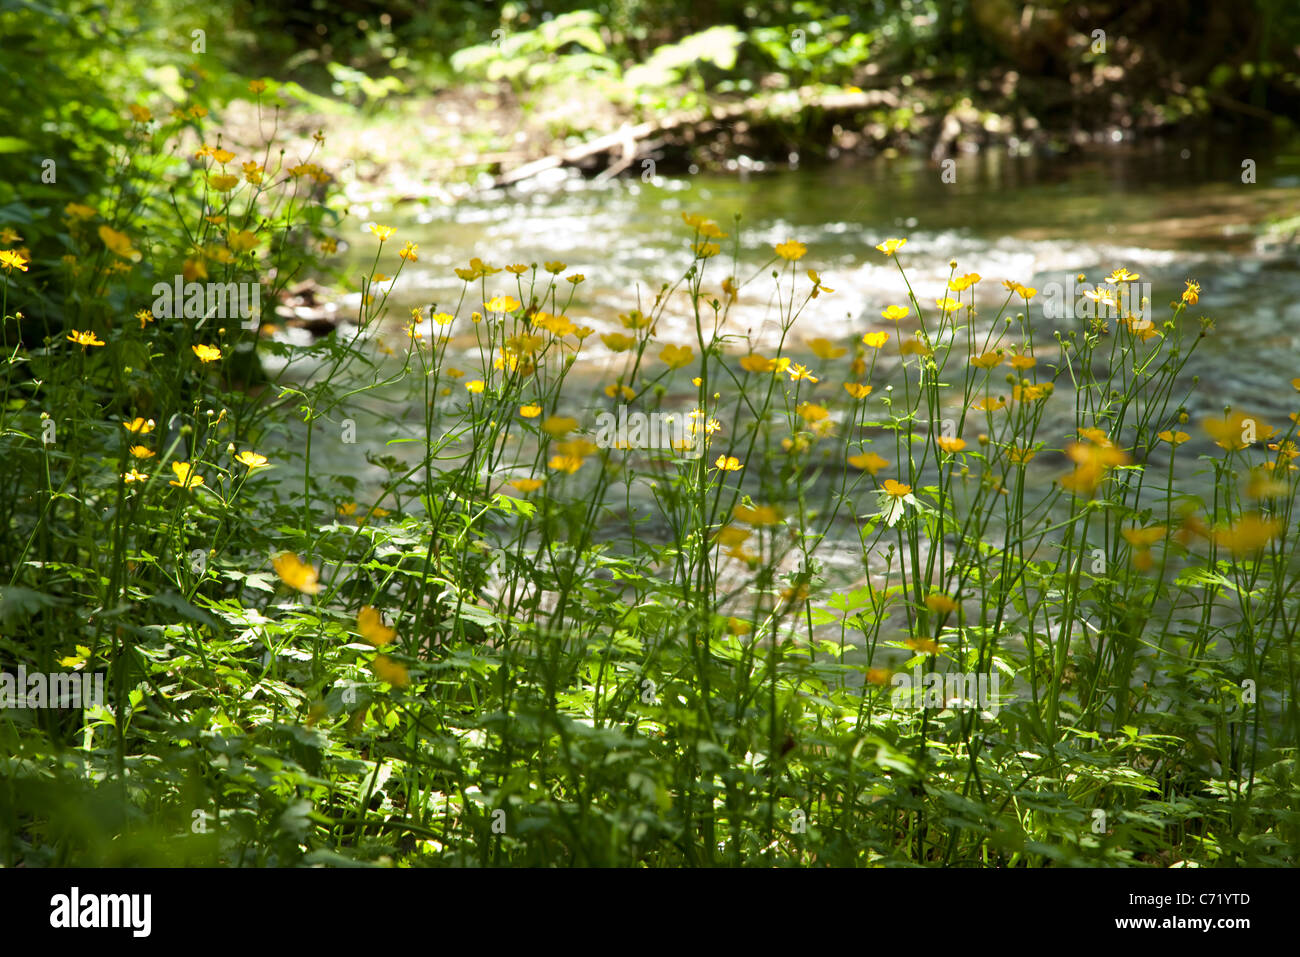 Wildflowers in nature - Stock Image